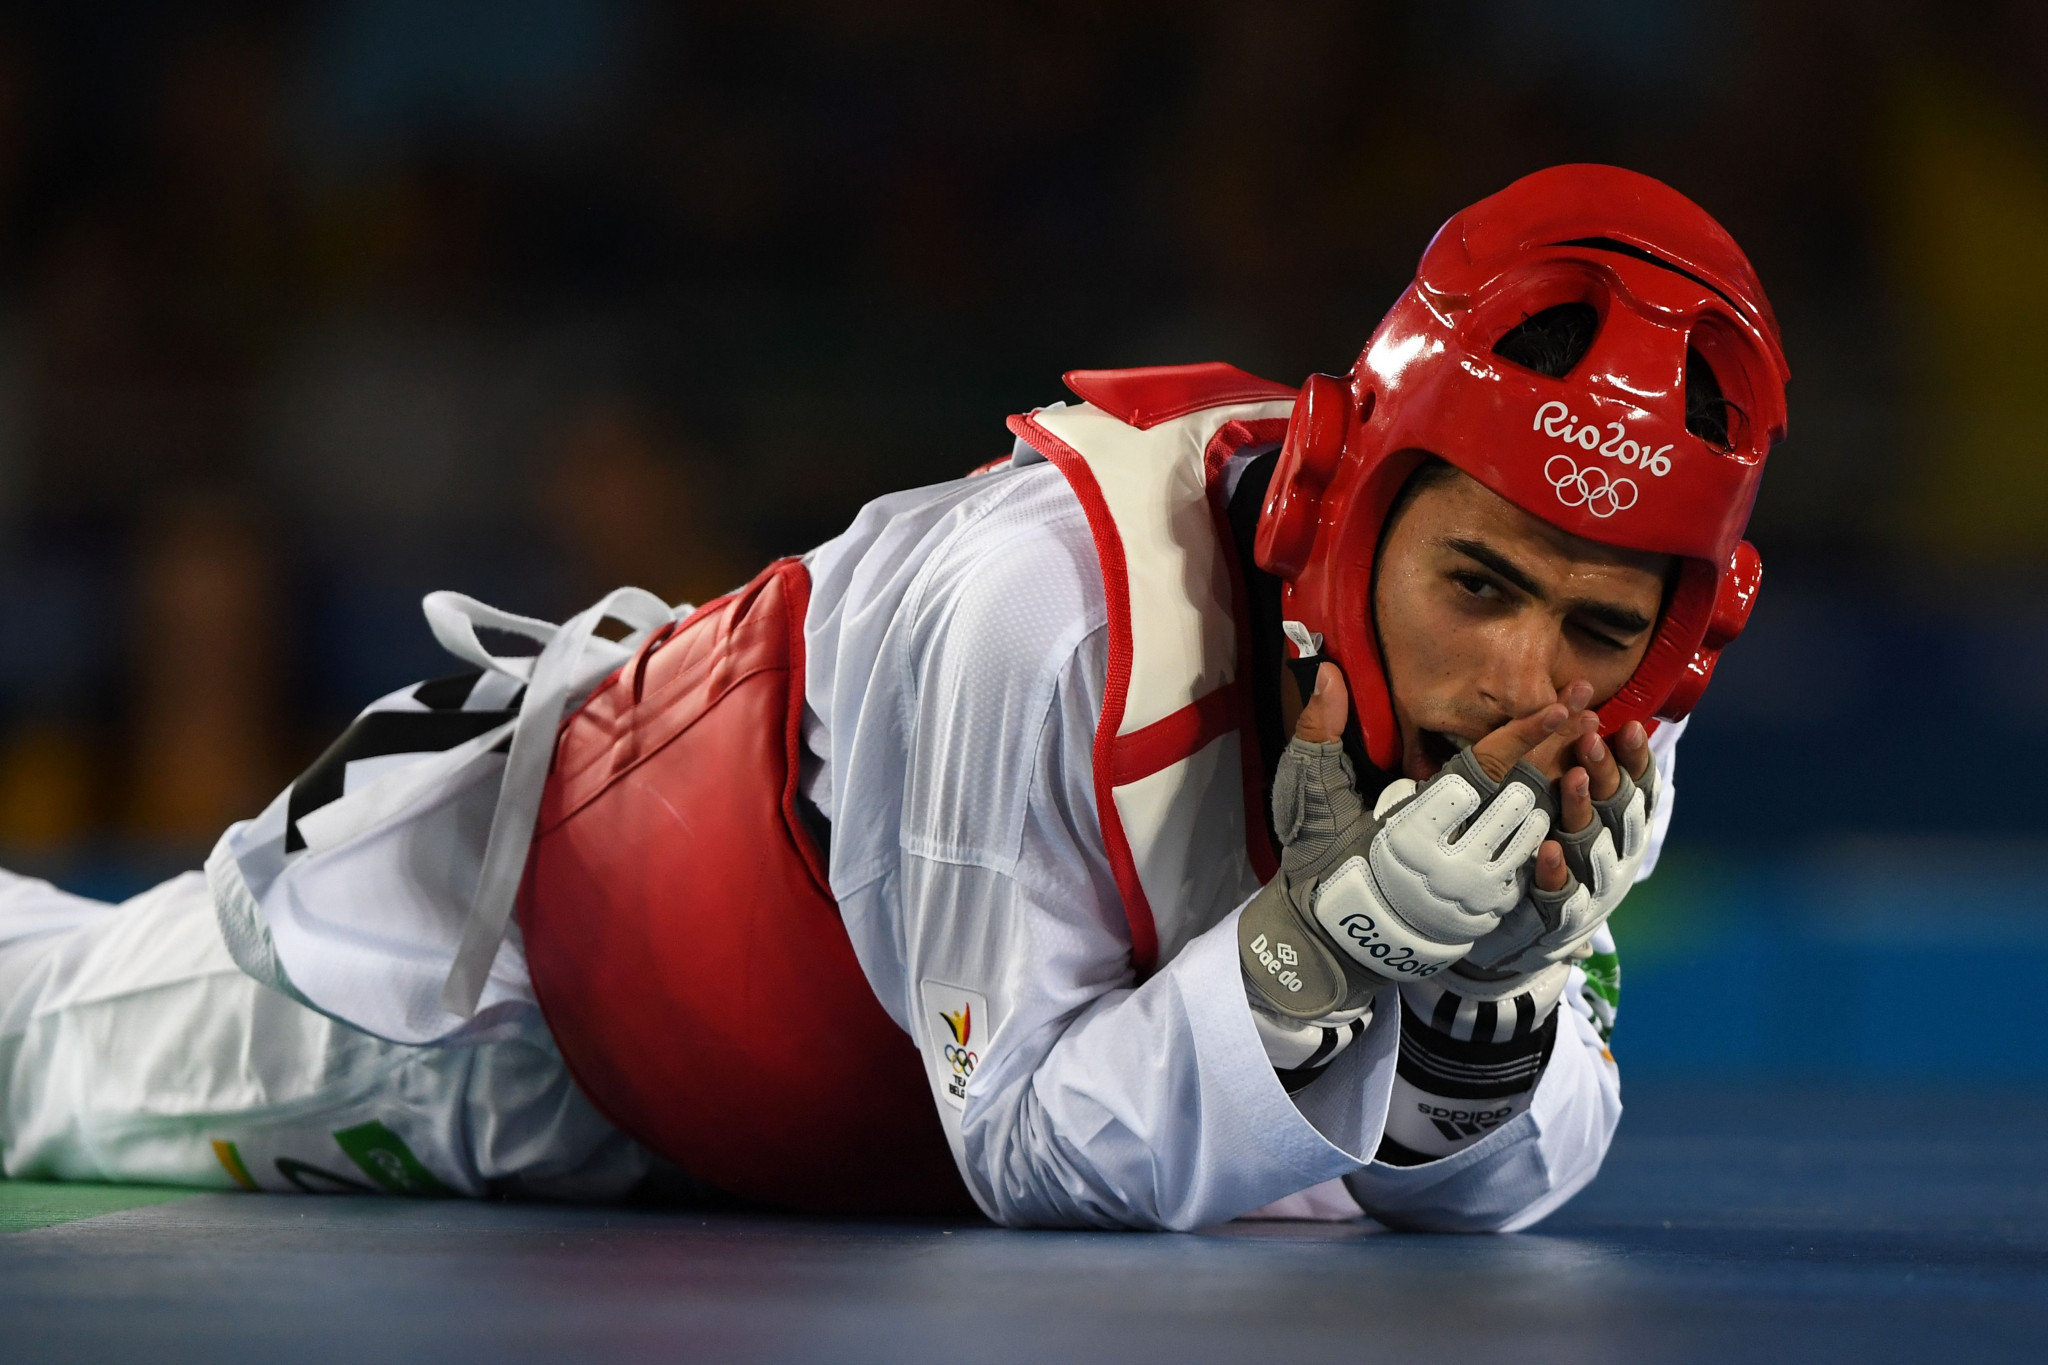 Former world champions such as Jaouad Achab have led the sessions ©Getty Images